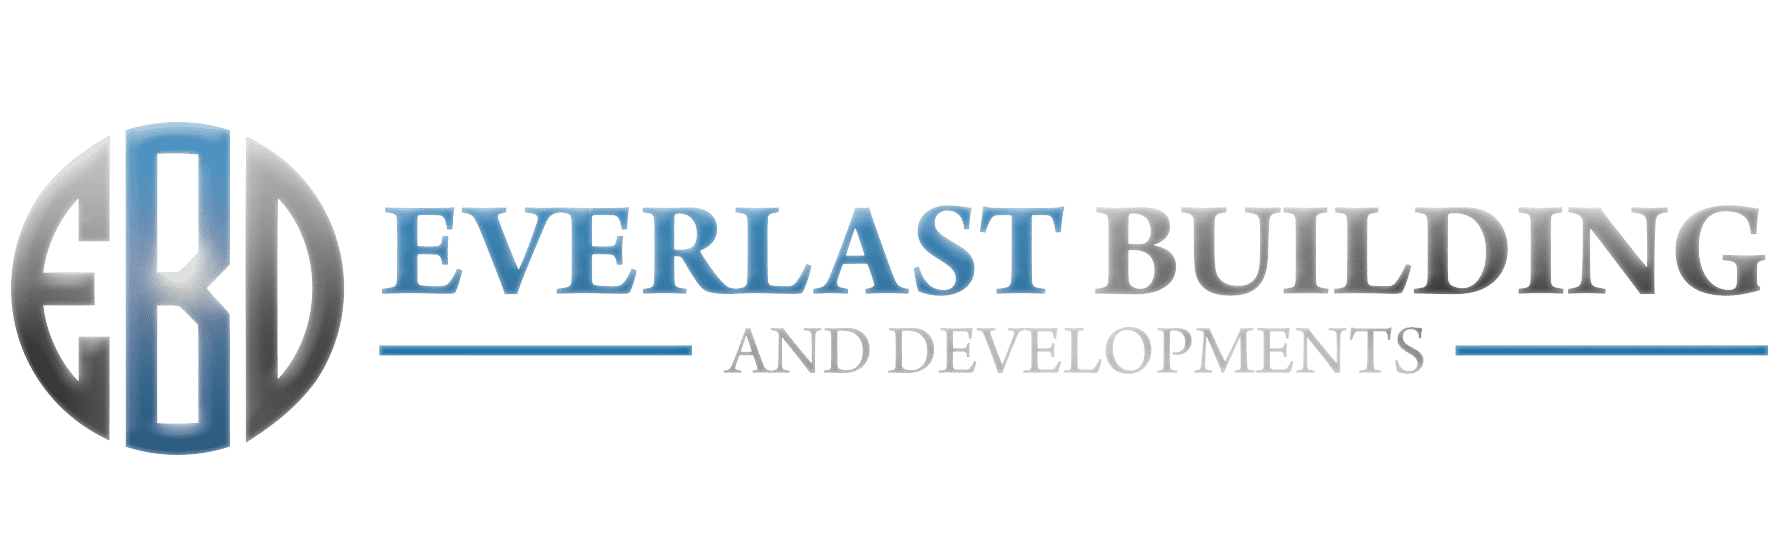 Everlast Building and Developments